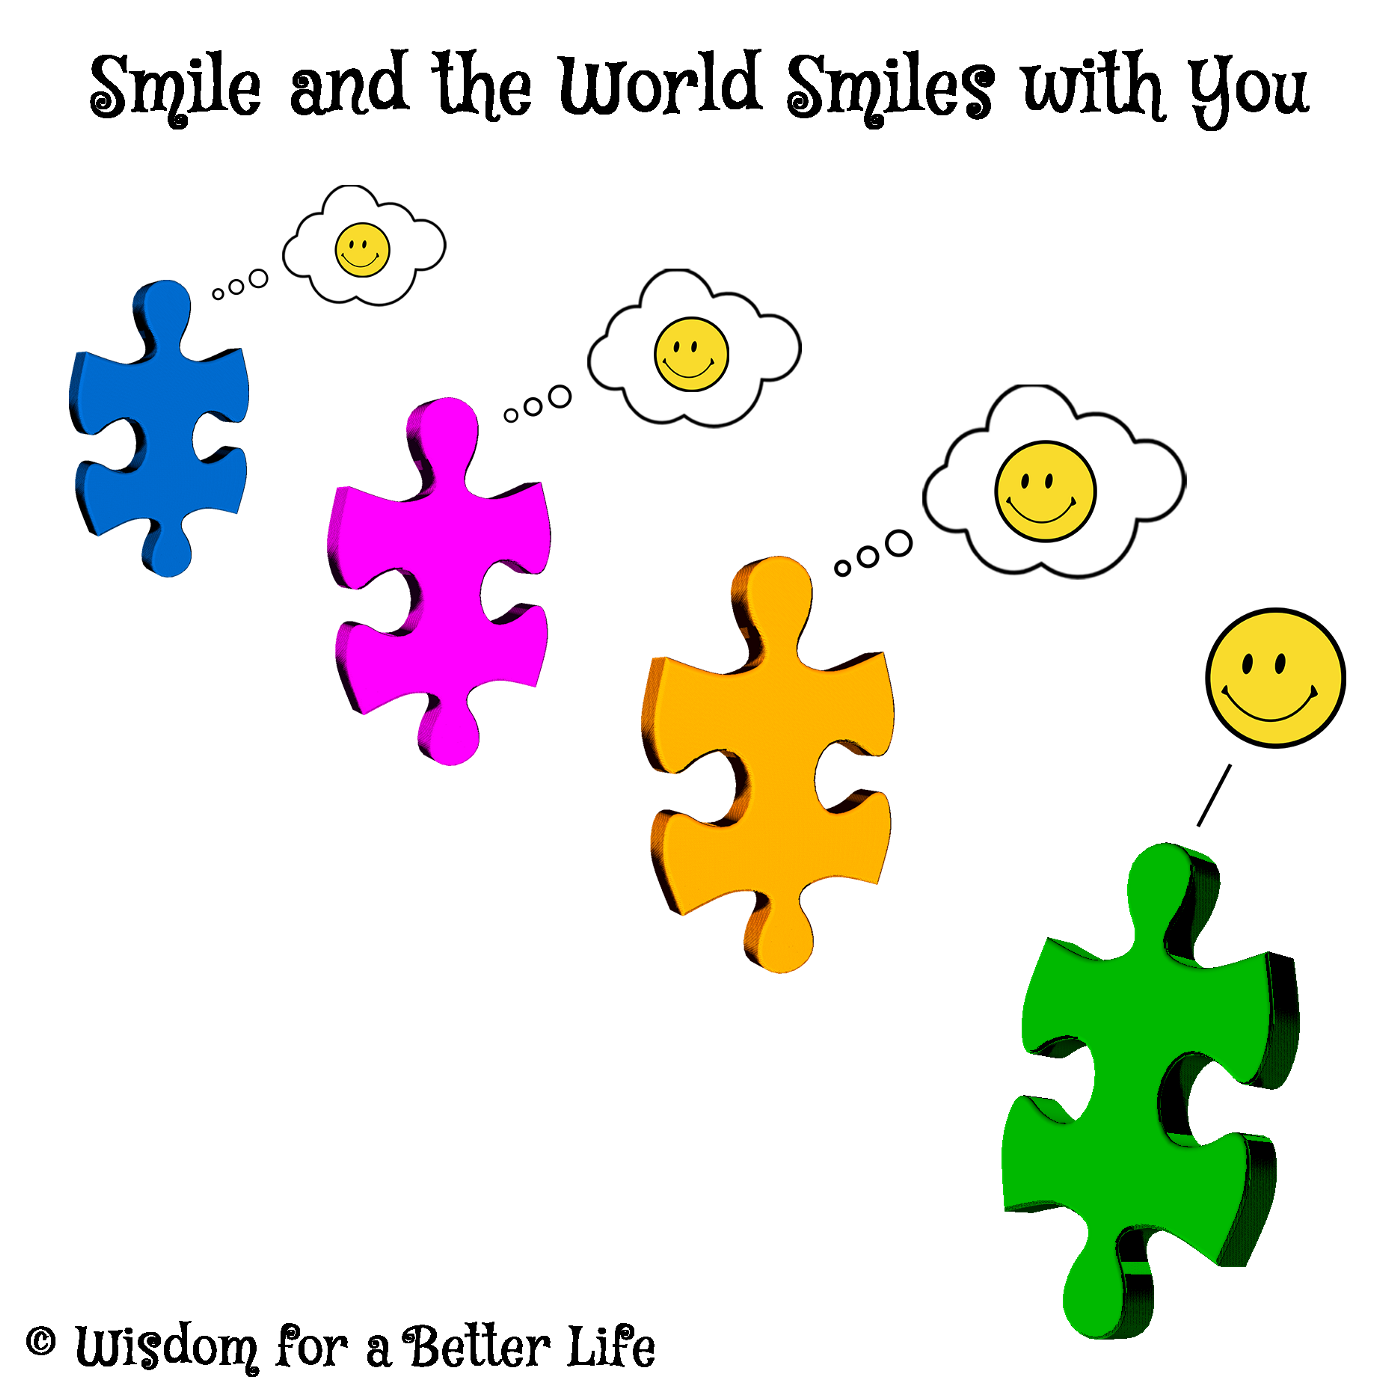 The Little Things Matter: The Power of a Smile